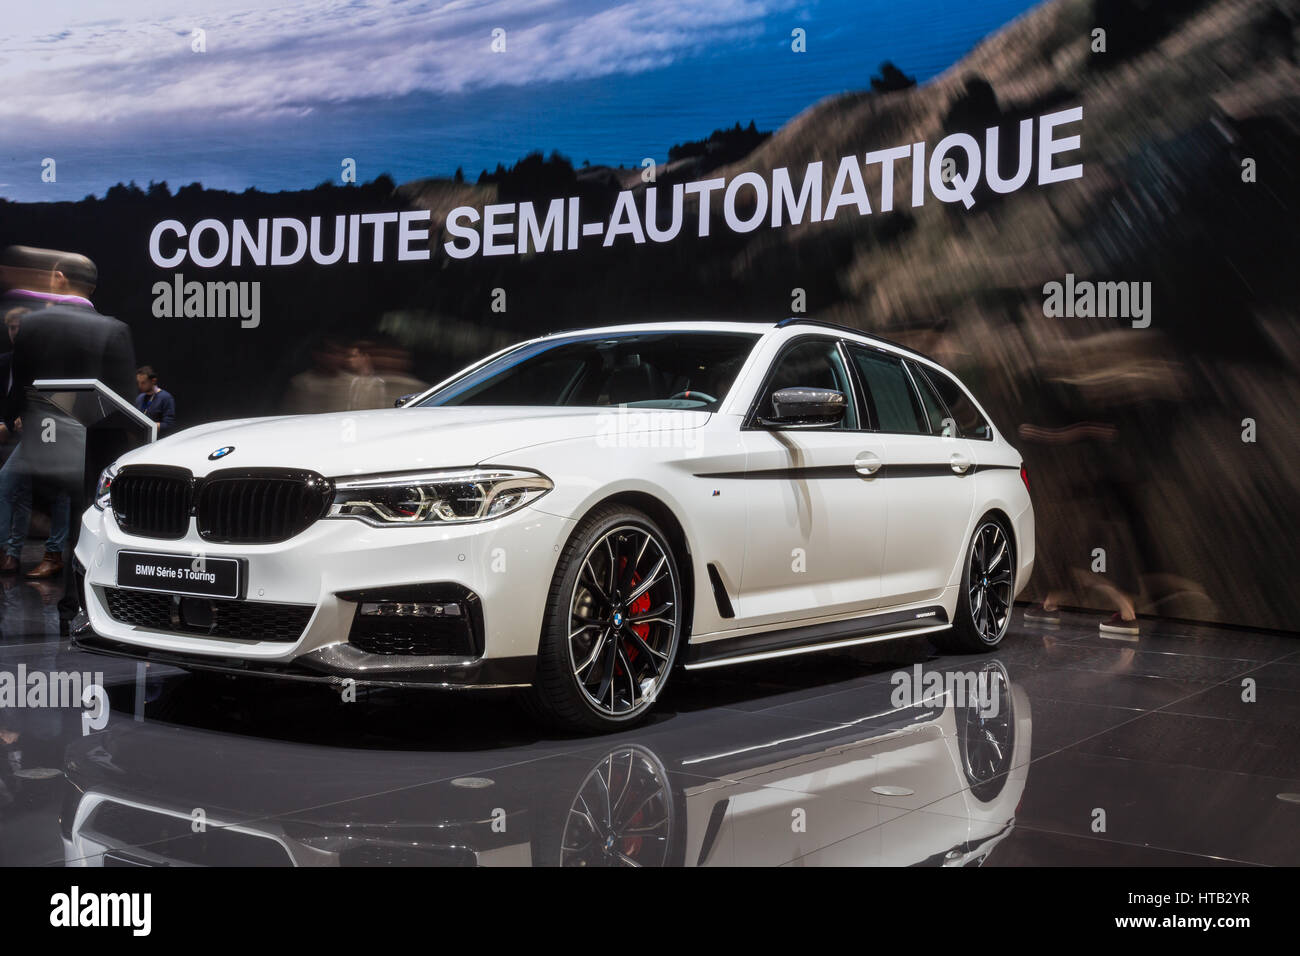 The BMW Série 5 touring at the 87th 2017 Geneva International Motor Show in Palexpo, Switzerland. - Stock Image